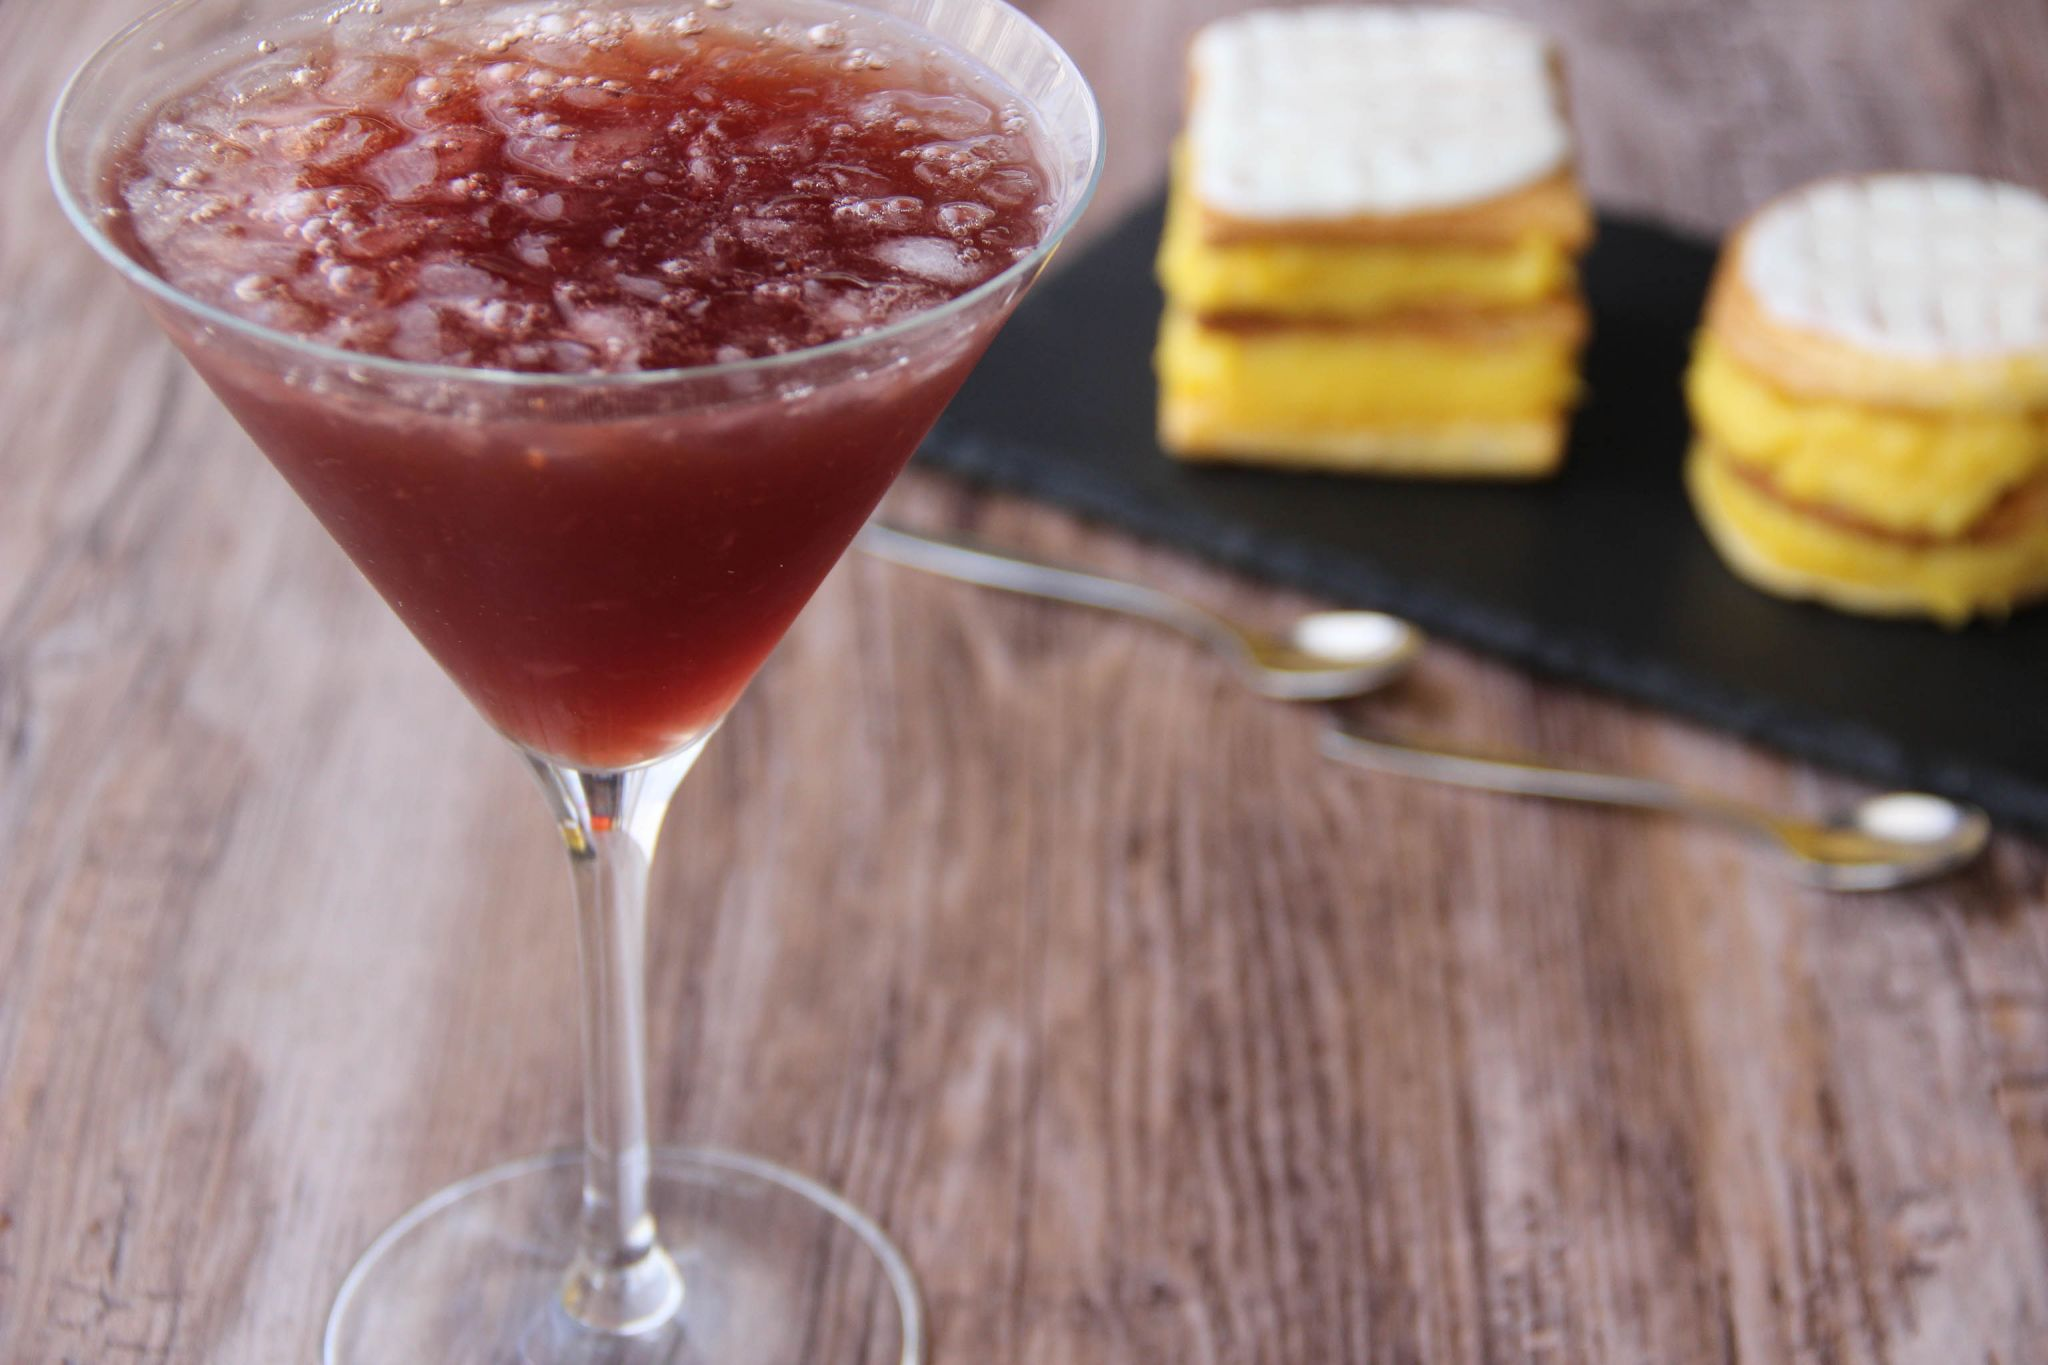 Showbiz cocktail and millefeuille napoleon cake